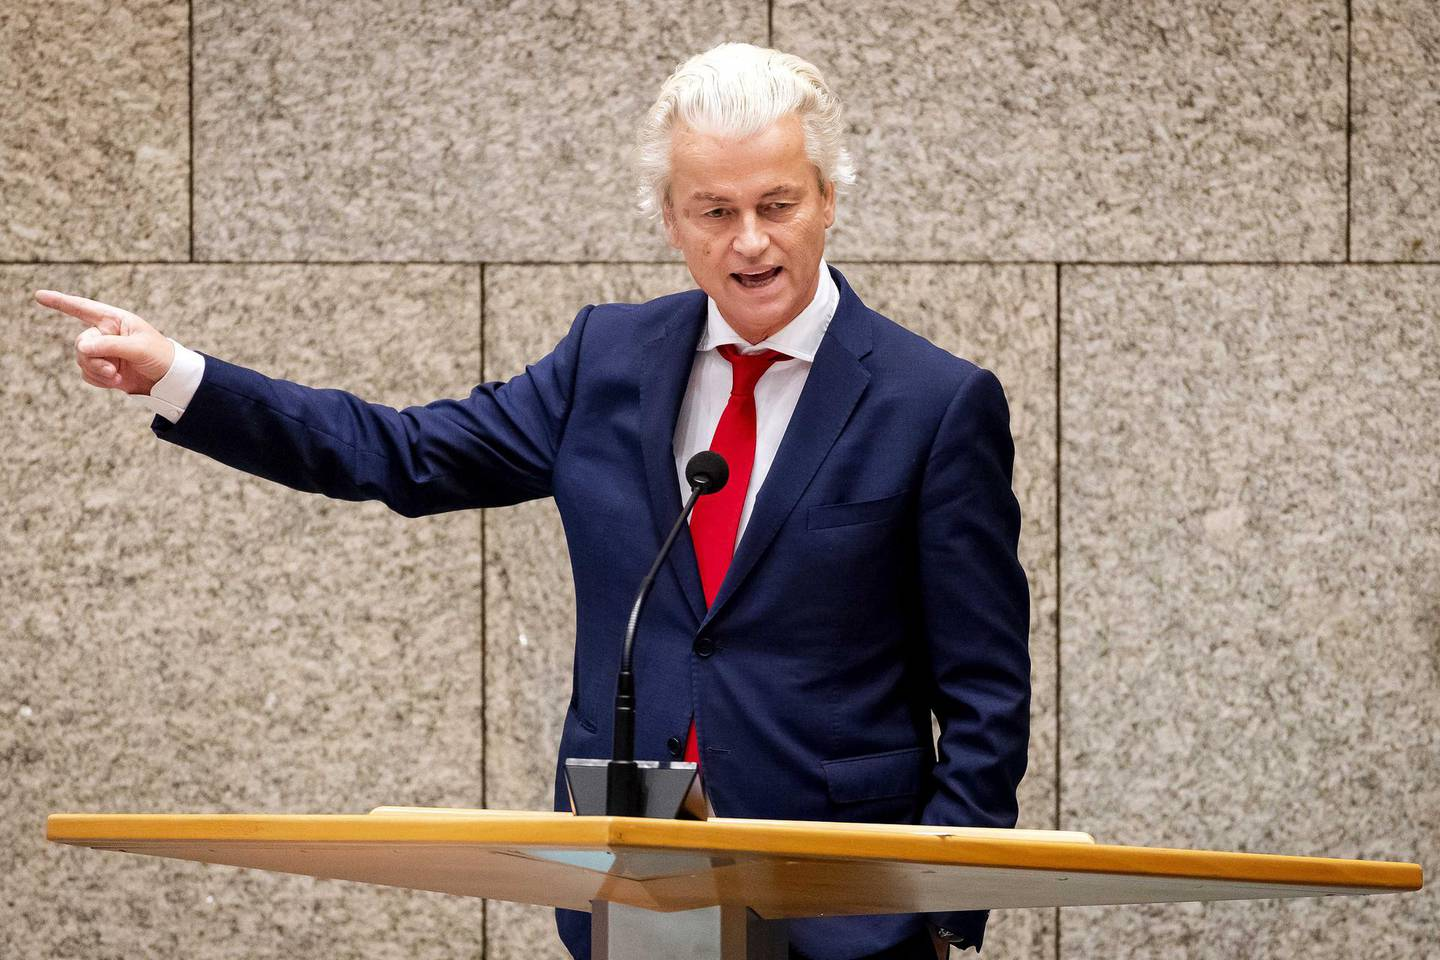 epa08490186 Leader of the far-right Party for Freedom (PVV) Geert Wilders speaks during a debate in the Senate (upper house of the Dutch parliament) in The Hague, The Netherlands, 17 June 2020. The senators debated the country's positions in the upcoming European summit scheduled for 19 June.  EPA/SEM VAN DER WAL